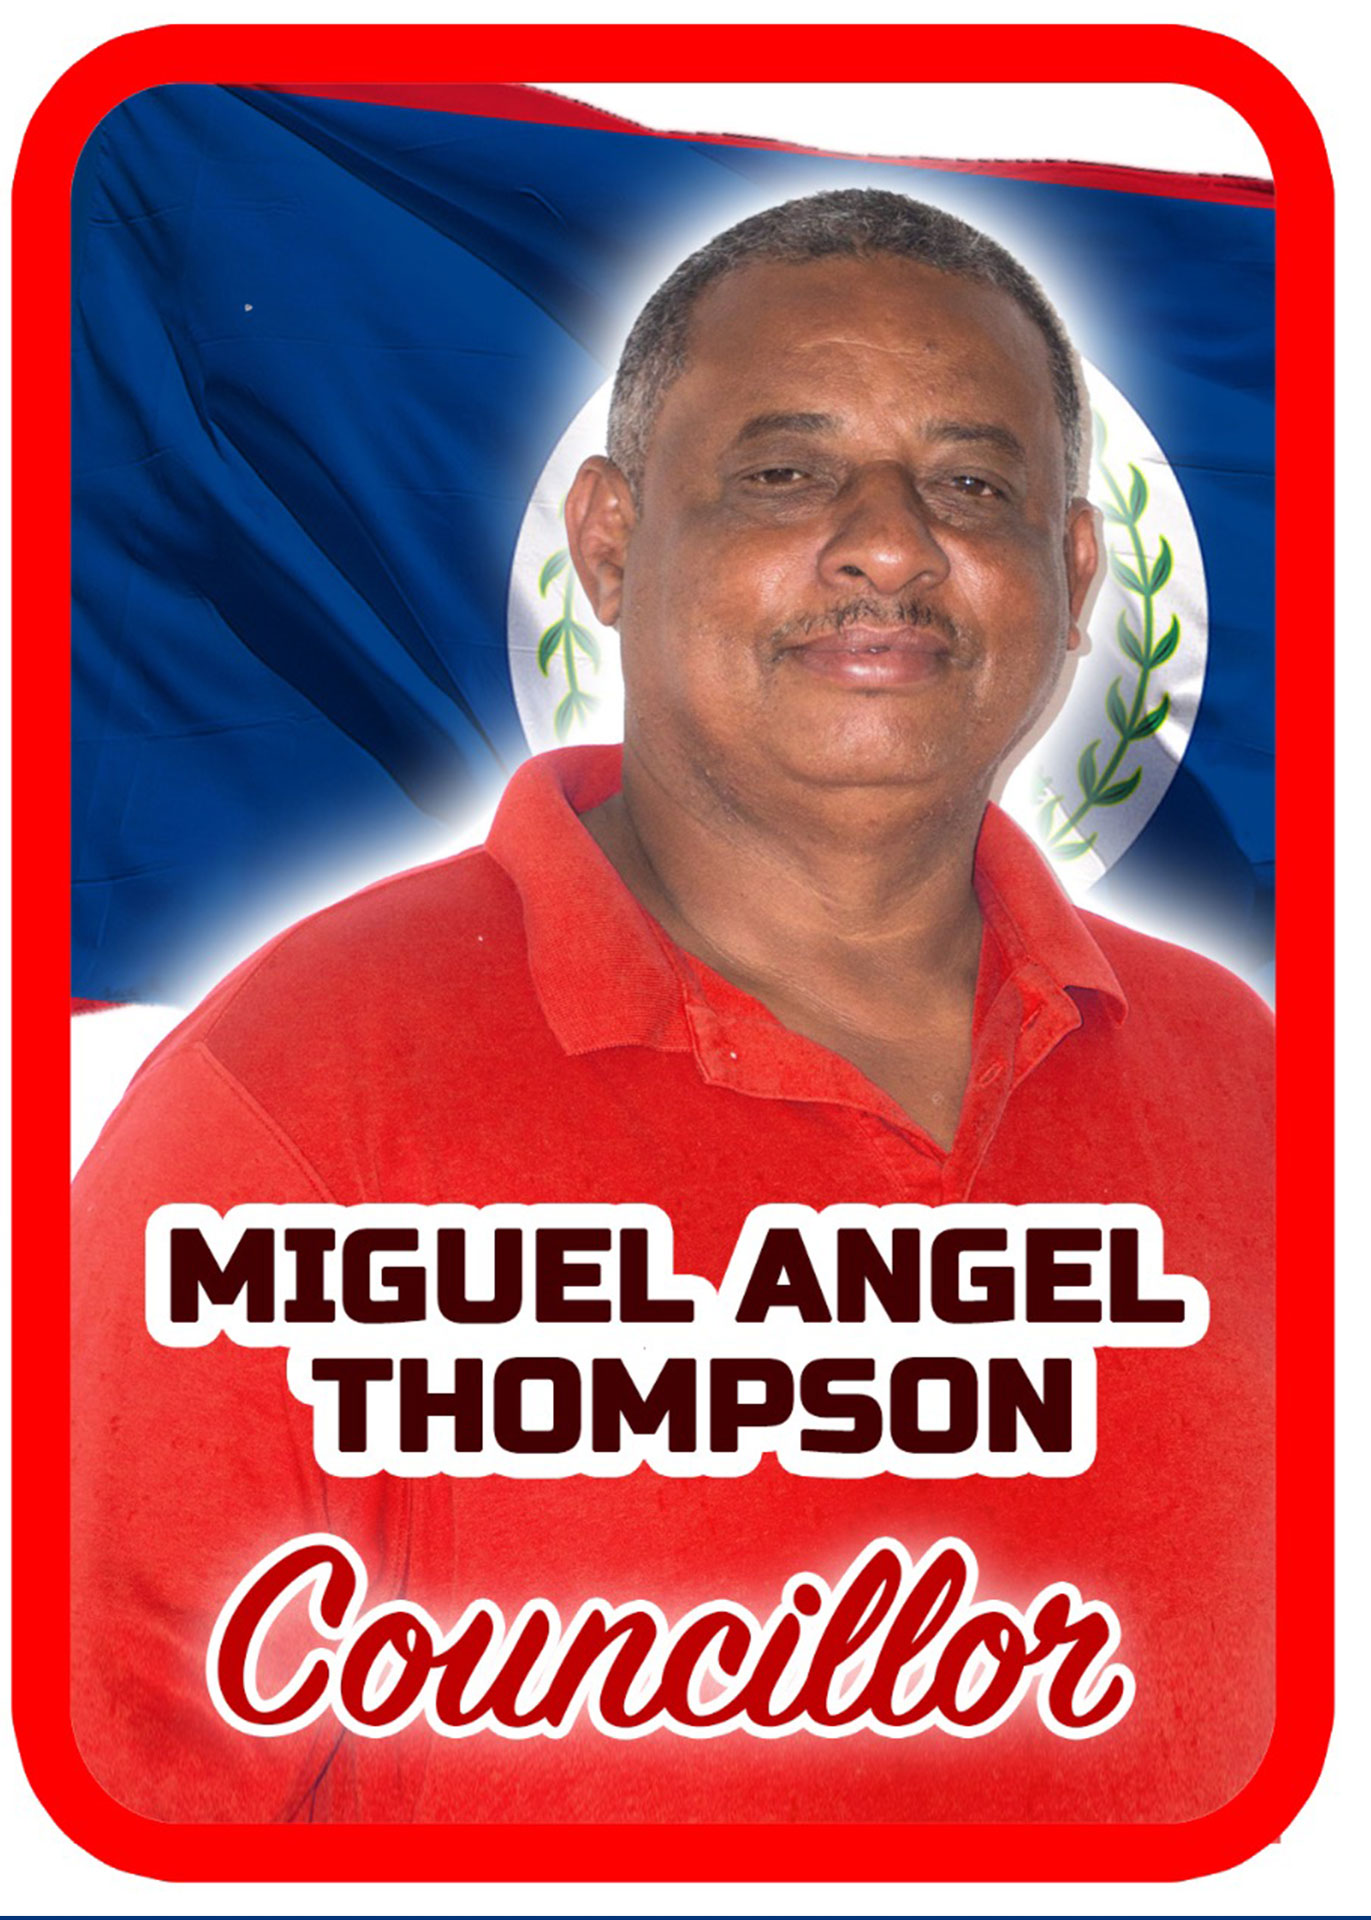 Miguel-Angel-Thompson